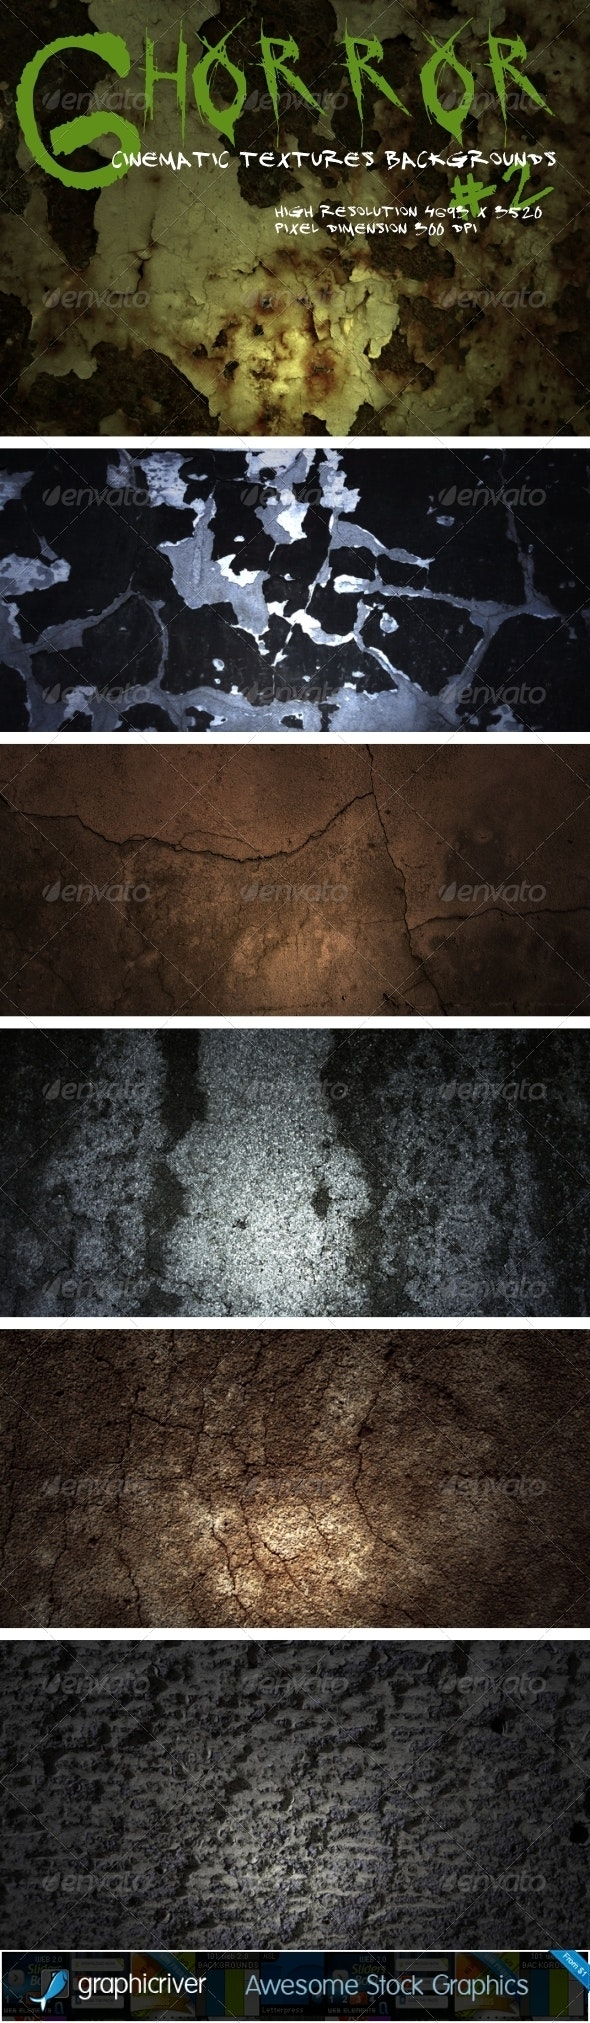 Horror Cinematic Backgrounds Pack 2 - Industrial / Grunge Textures